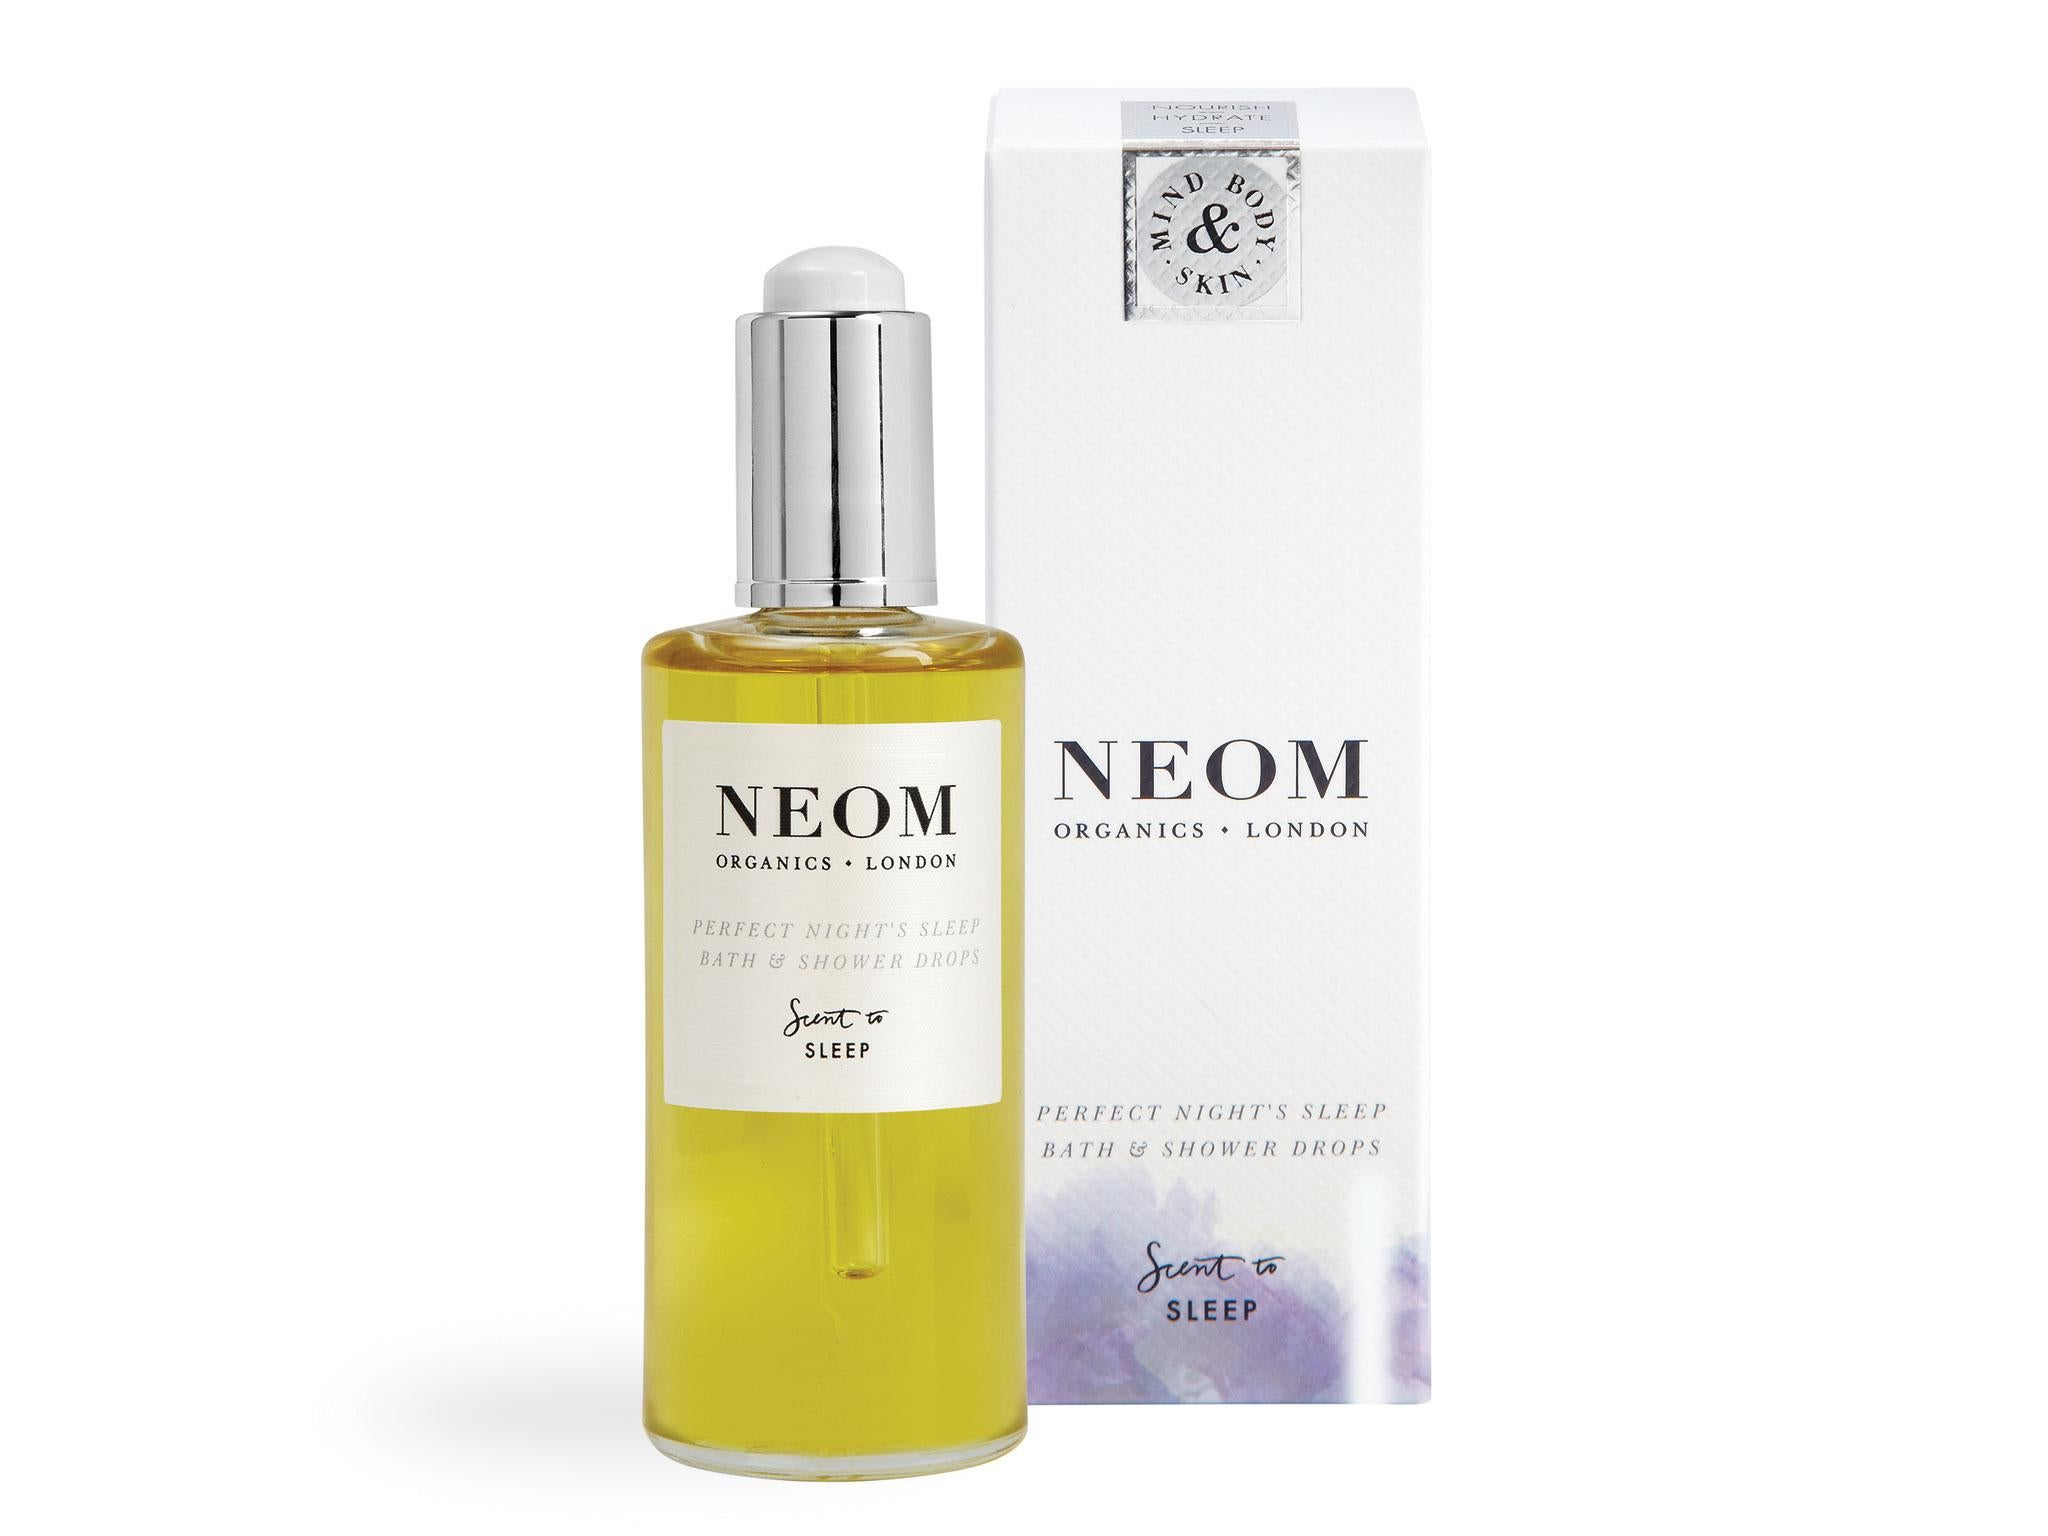 10 Best Bath Oils The Independent Bubble Foam Aromatherapy Pure Organic French Lavender Essential Oil Rose Neom Perfect Nights Sleep Shower Drops 40 For 100ml All Beauty